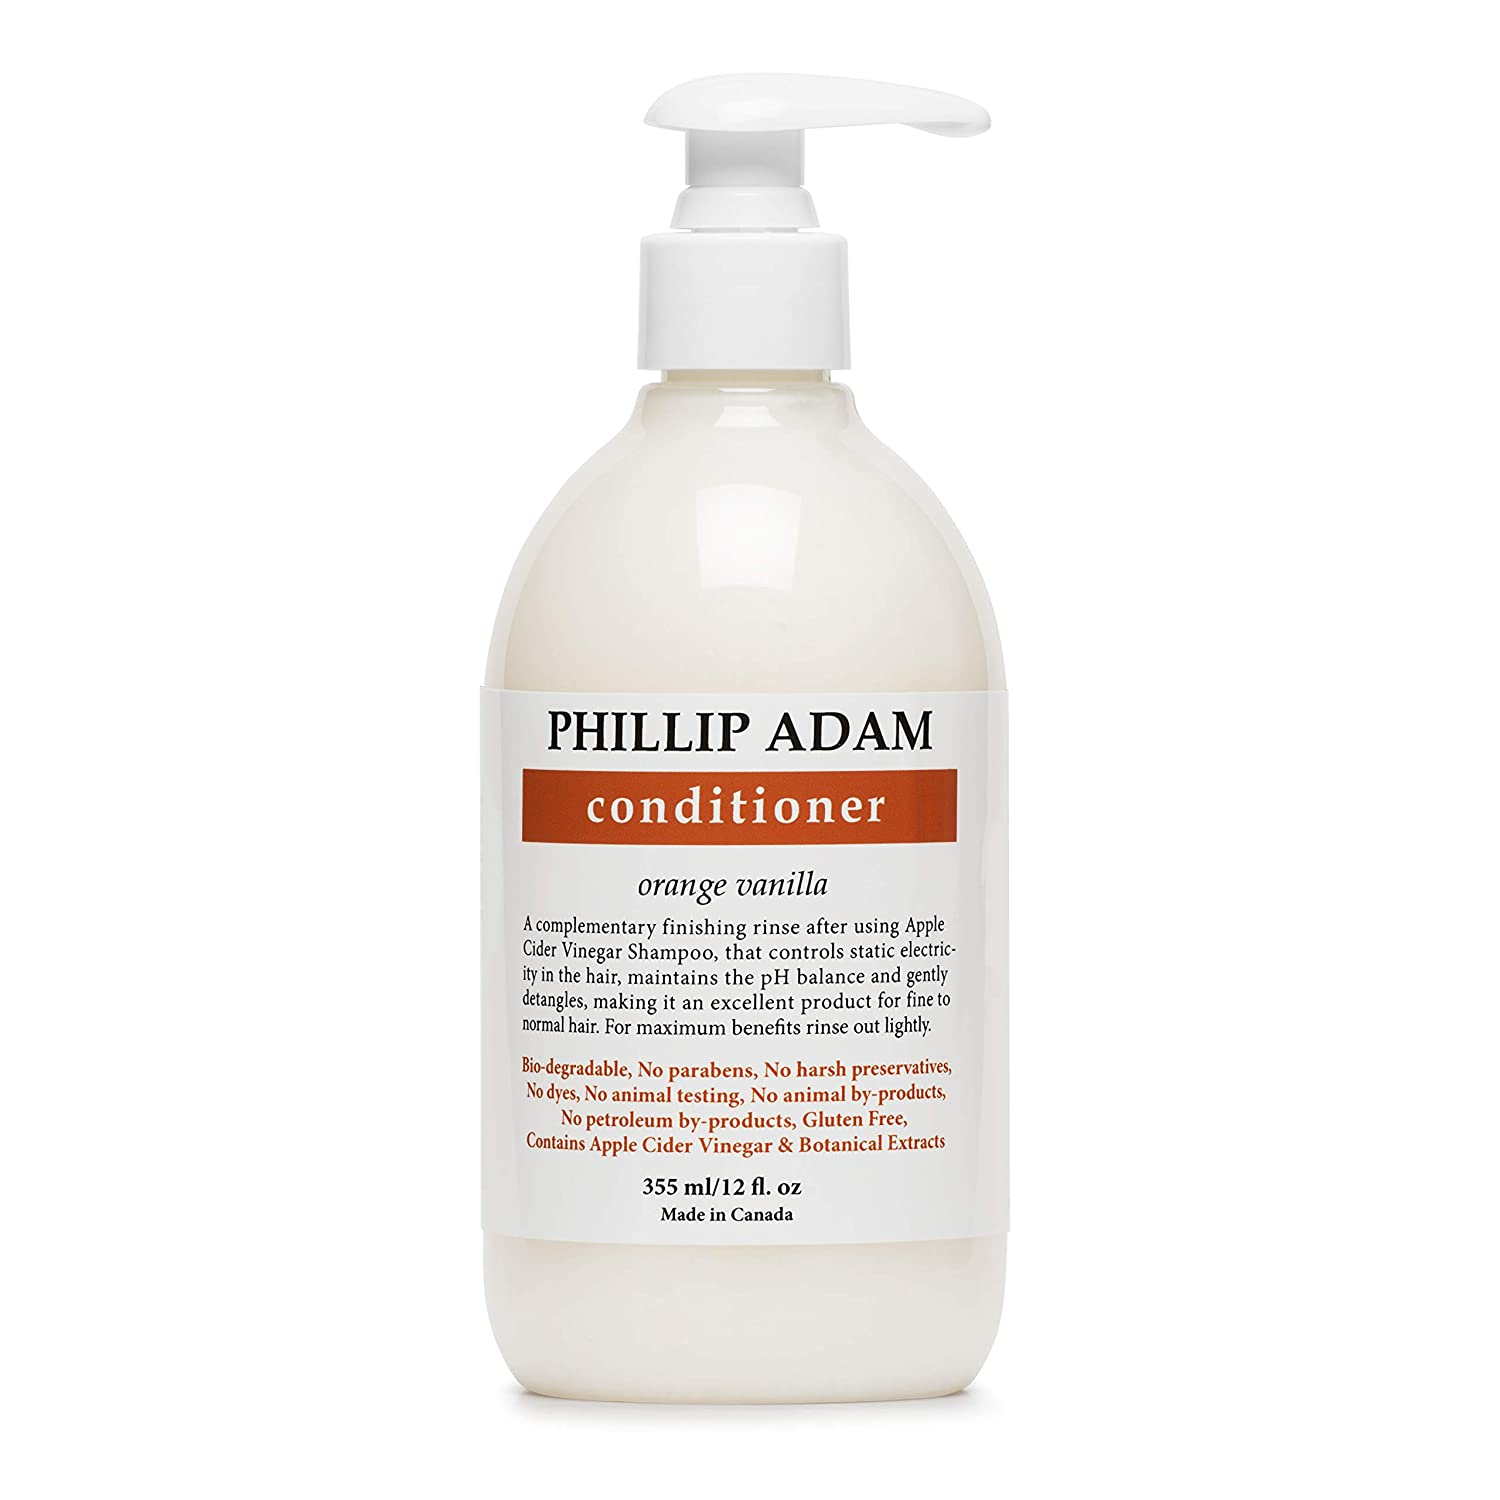 Phillip Adam Orange Vanilla Conditioner for Smooth and Shiny Hair - No Harsh Chemicals - Safe for Color Treated Hair - Delicious Natural Scent - 12 Ounce